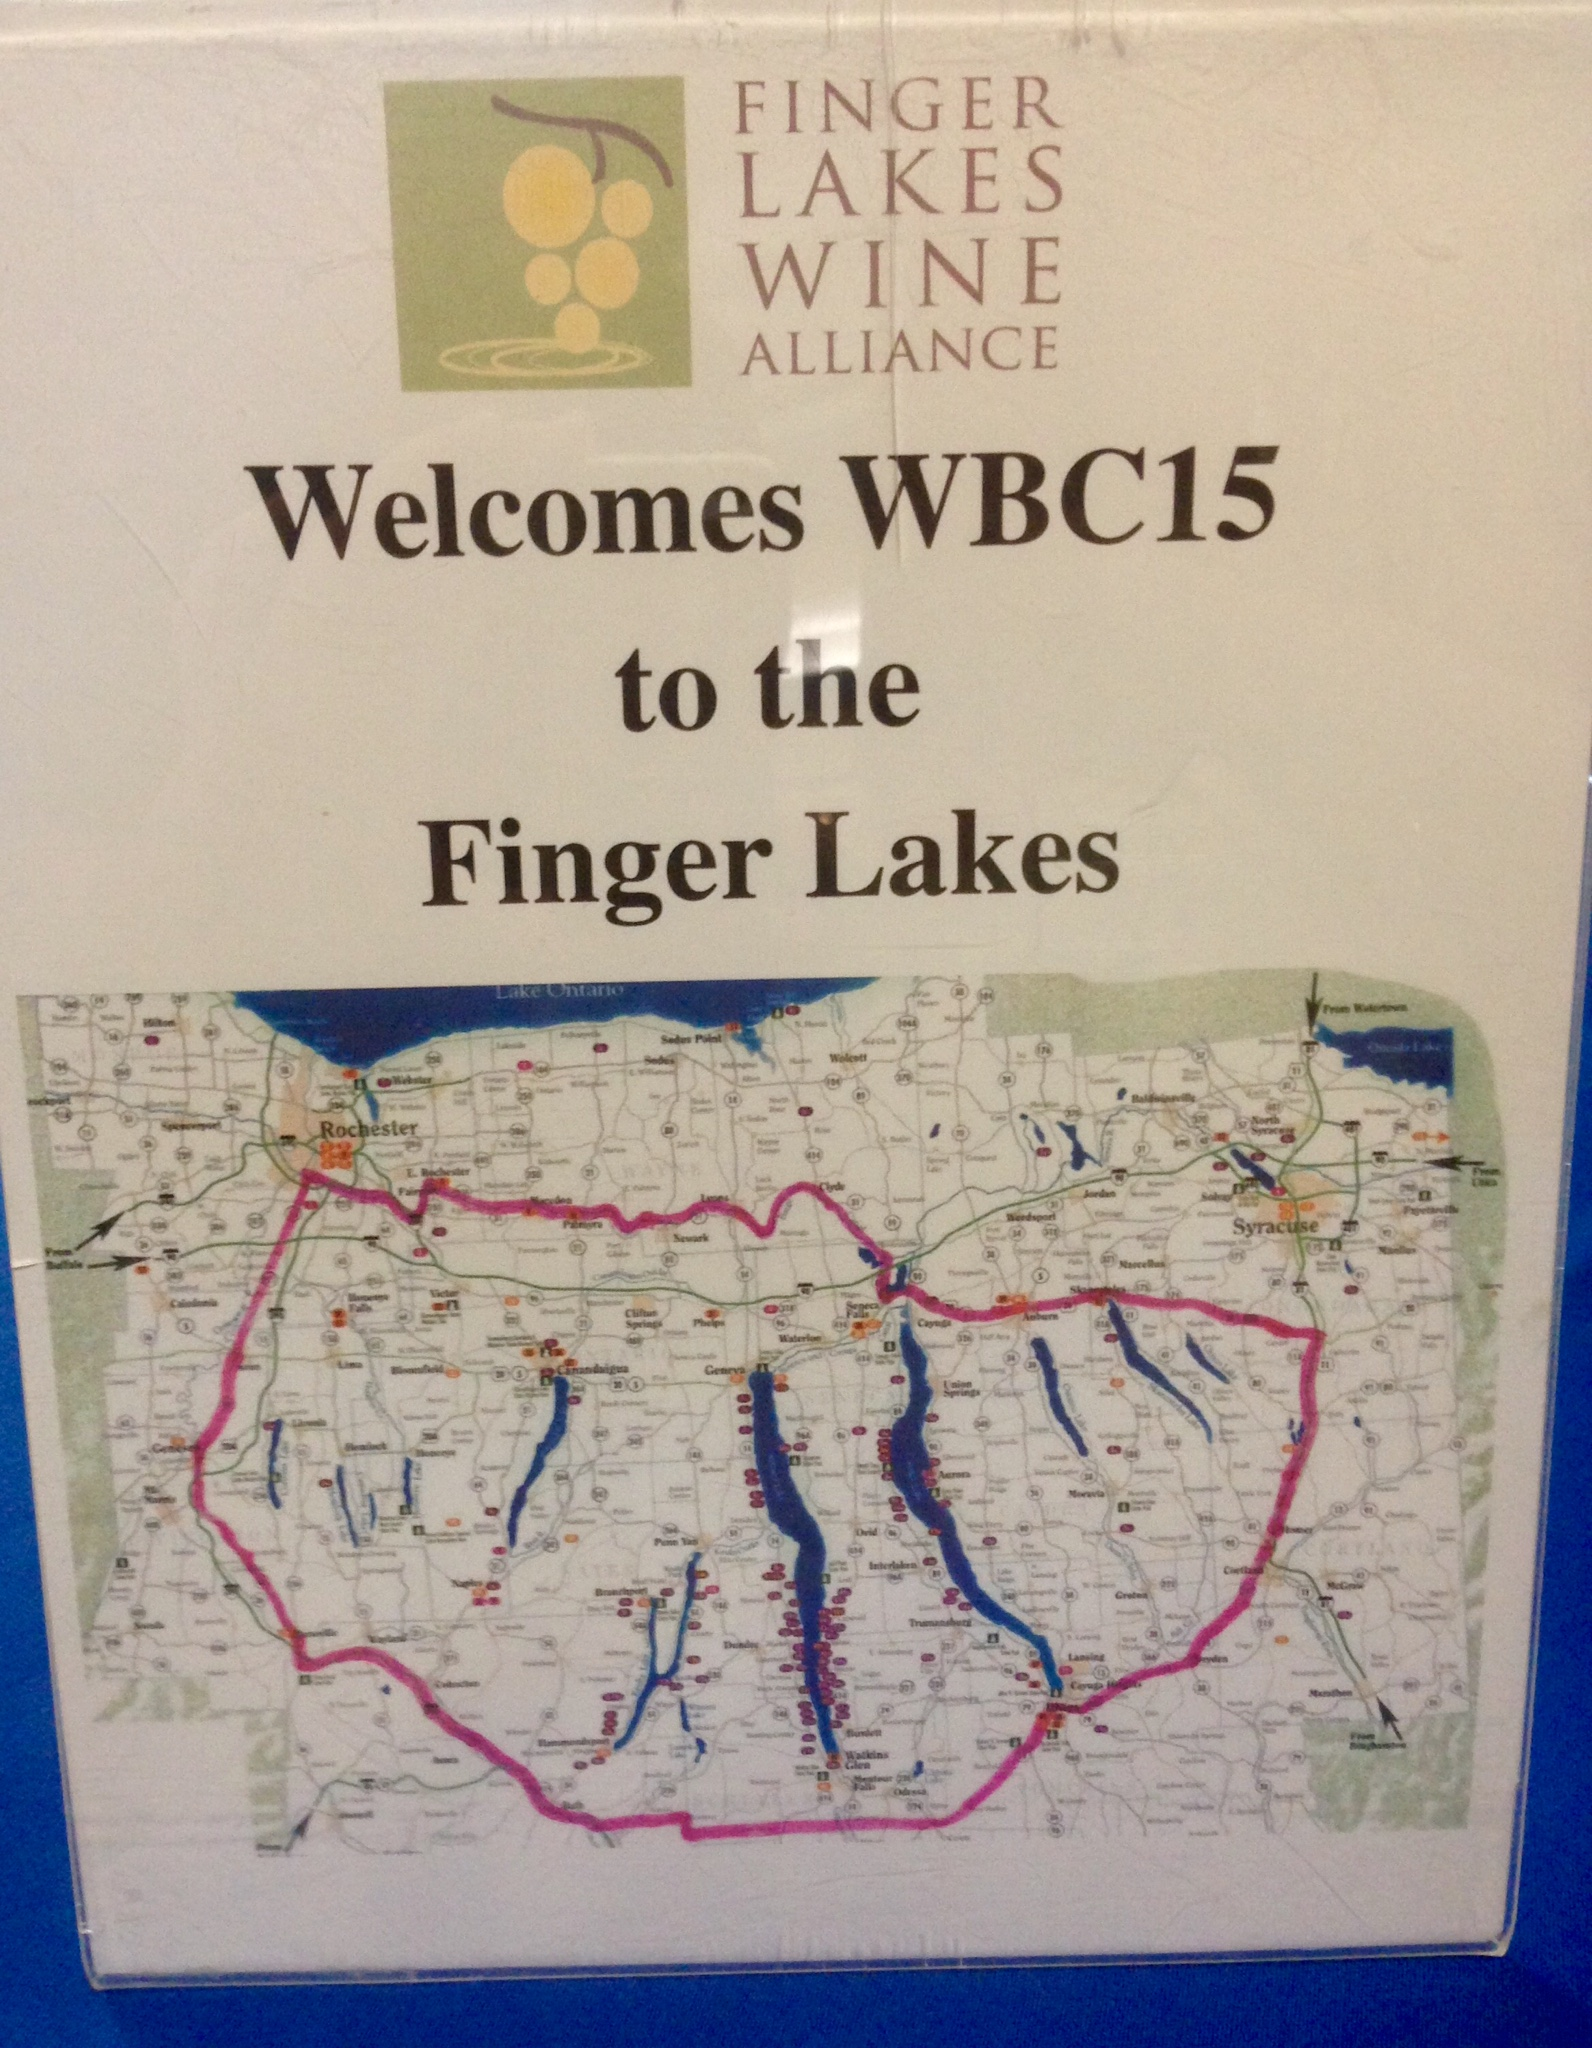 Map of The Finger Lakes illustrates how the area became known as such. Like fingers of a hand, the long narrow lakes span many miles.